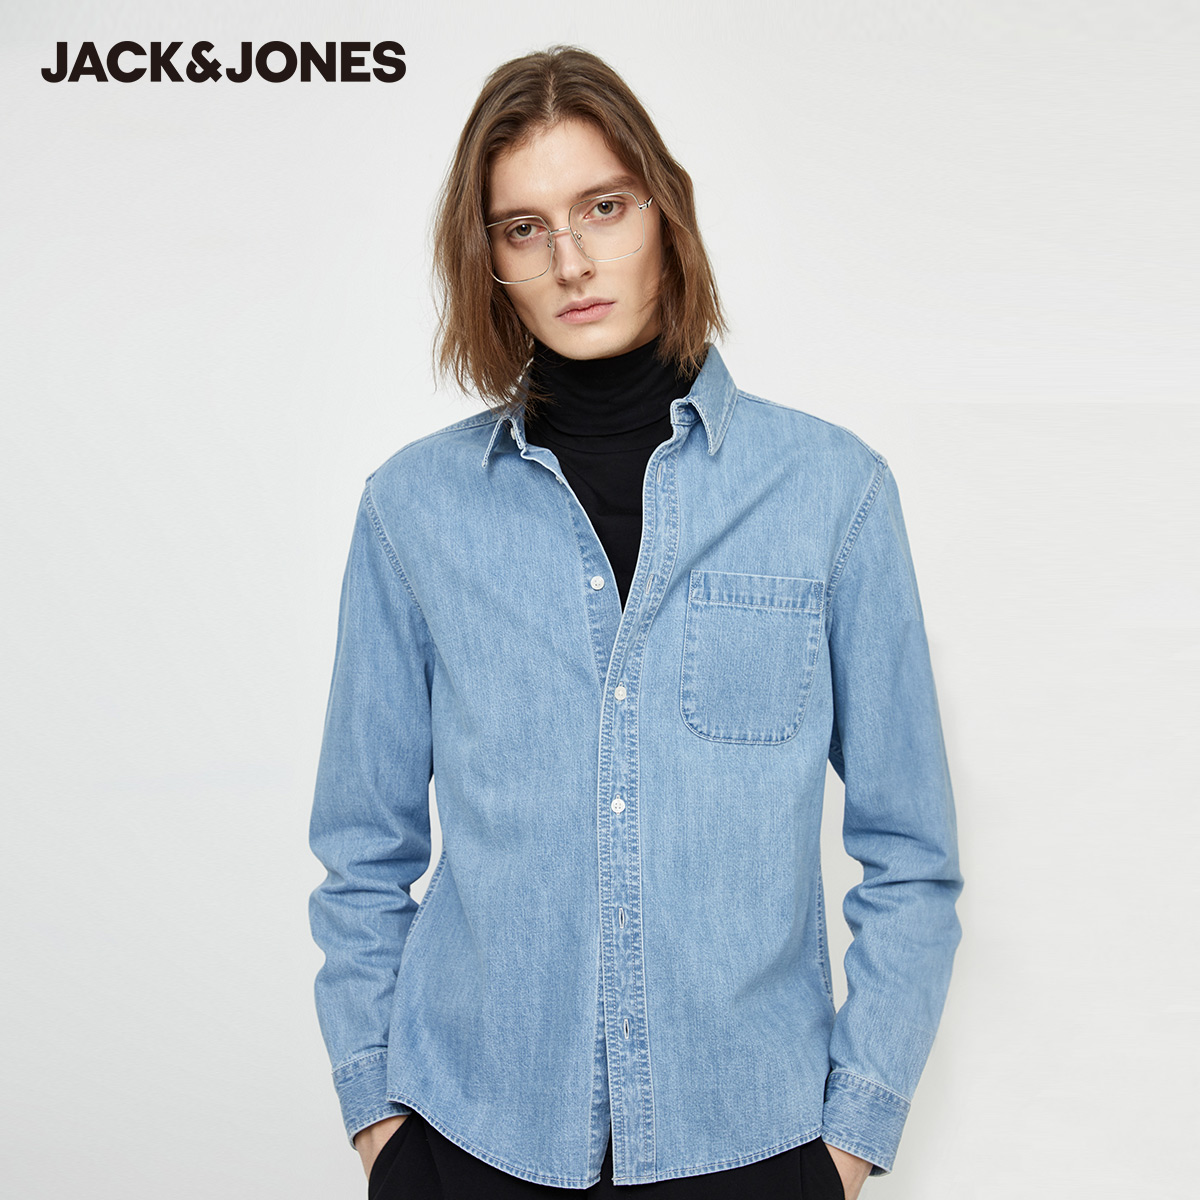 Jack Jones, Jack Jones, men's Vintage Port style shirt, casual jeans, long sleeve shirt, 220105541